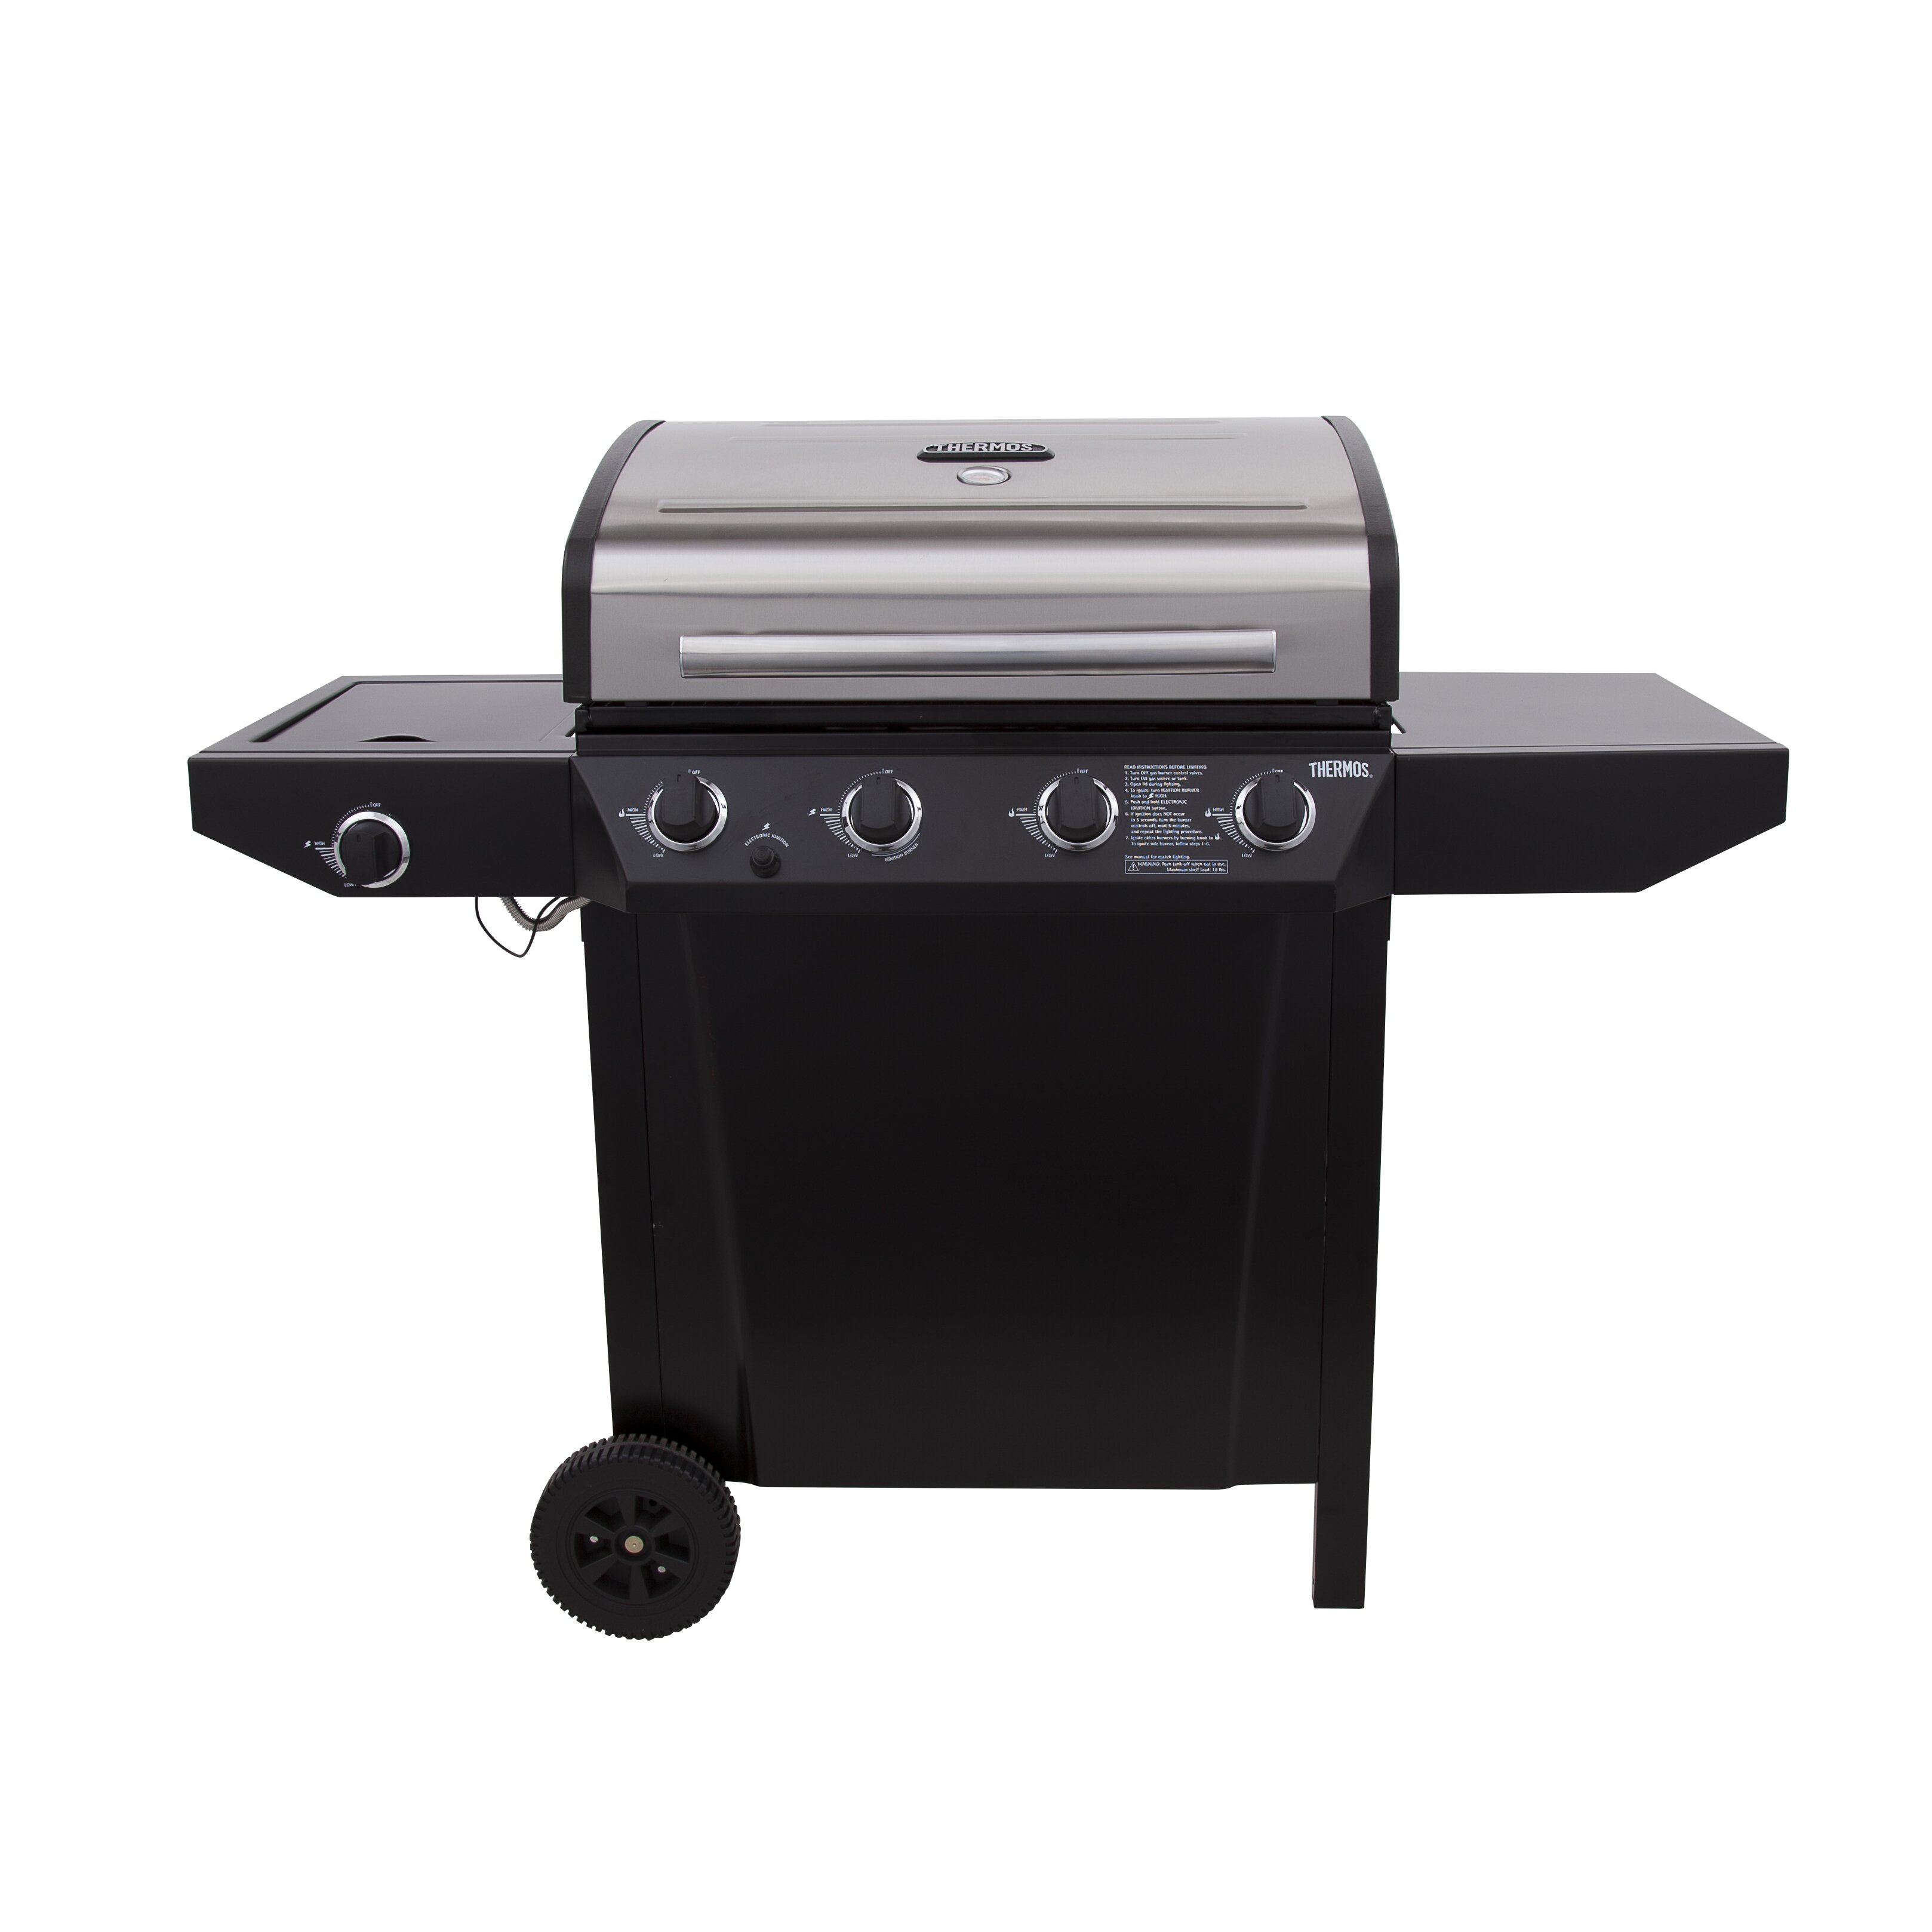 Charbroil Thermos 4 Burner Gas Grill With Side Burner